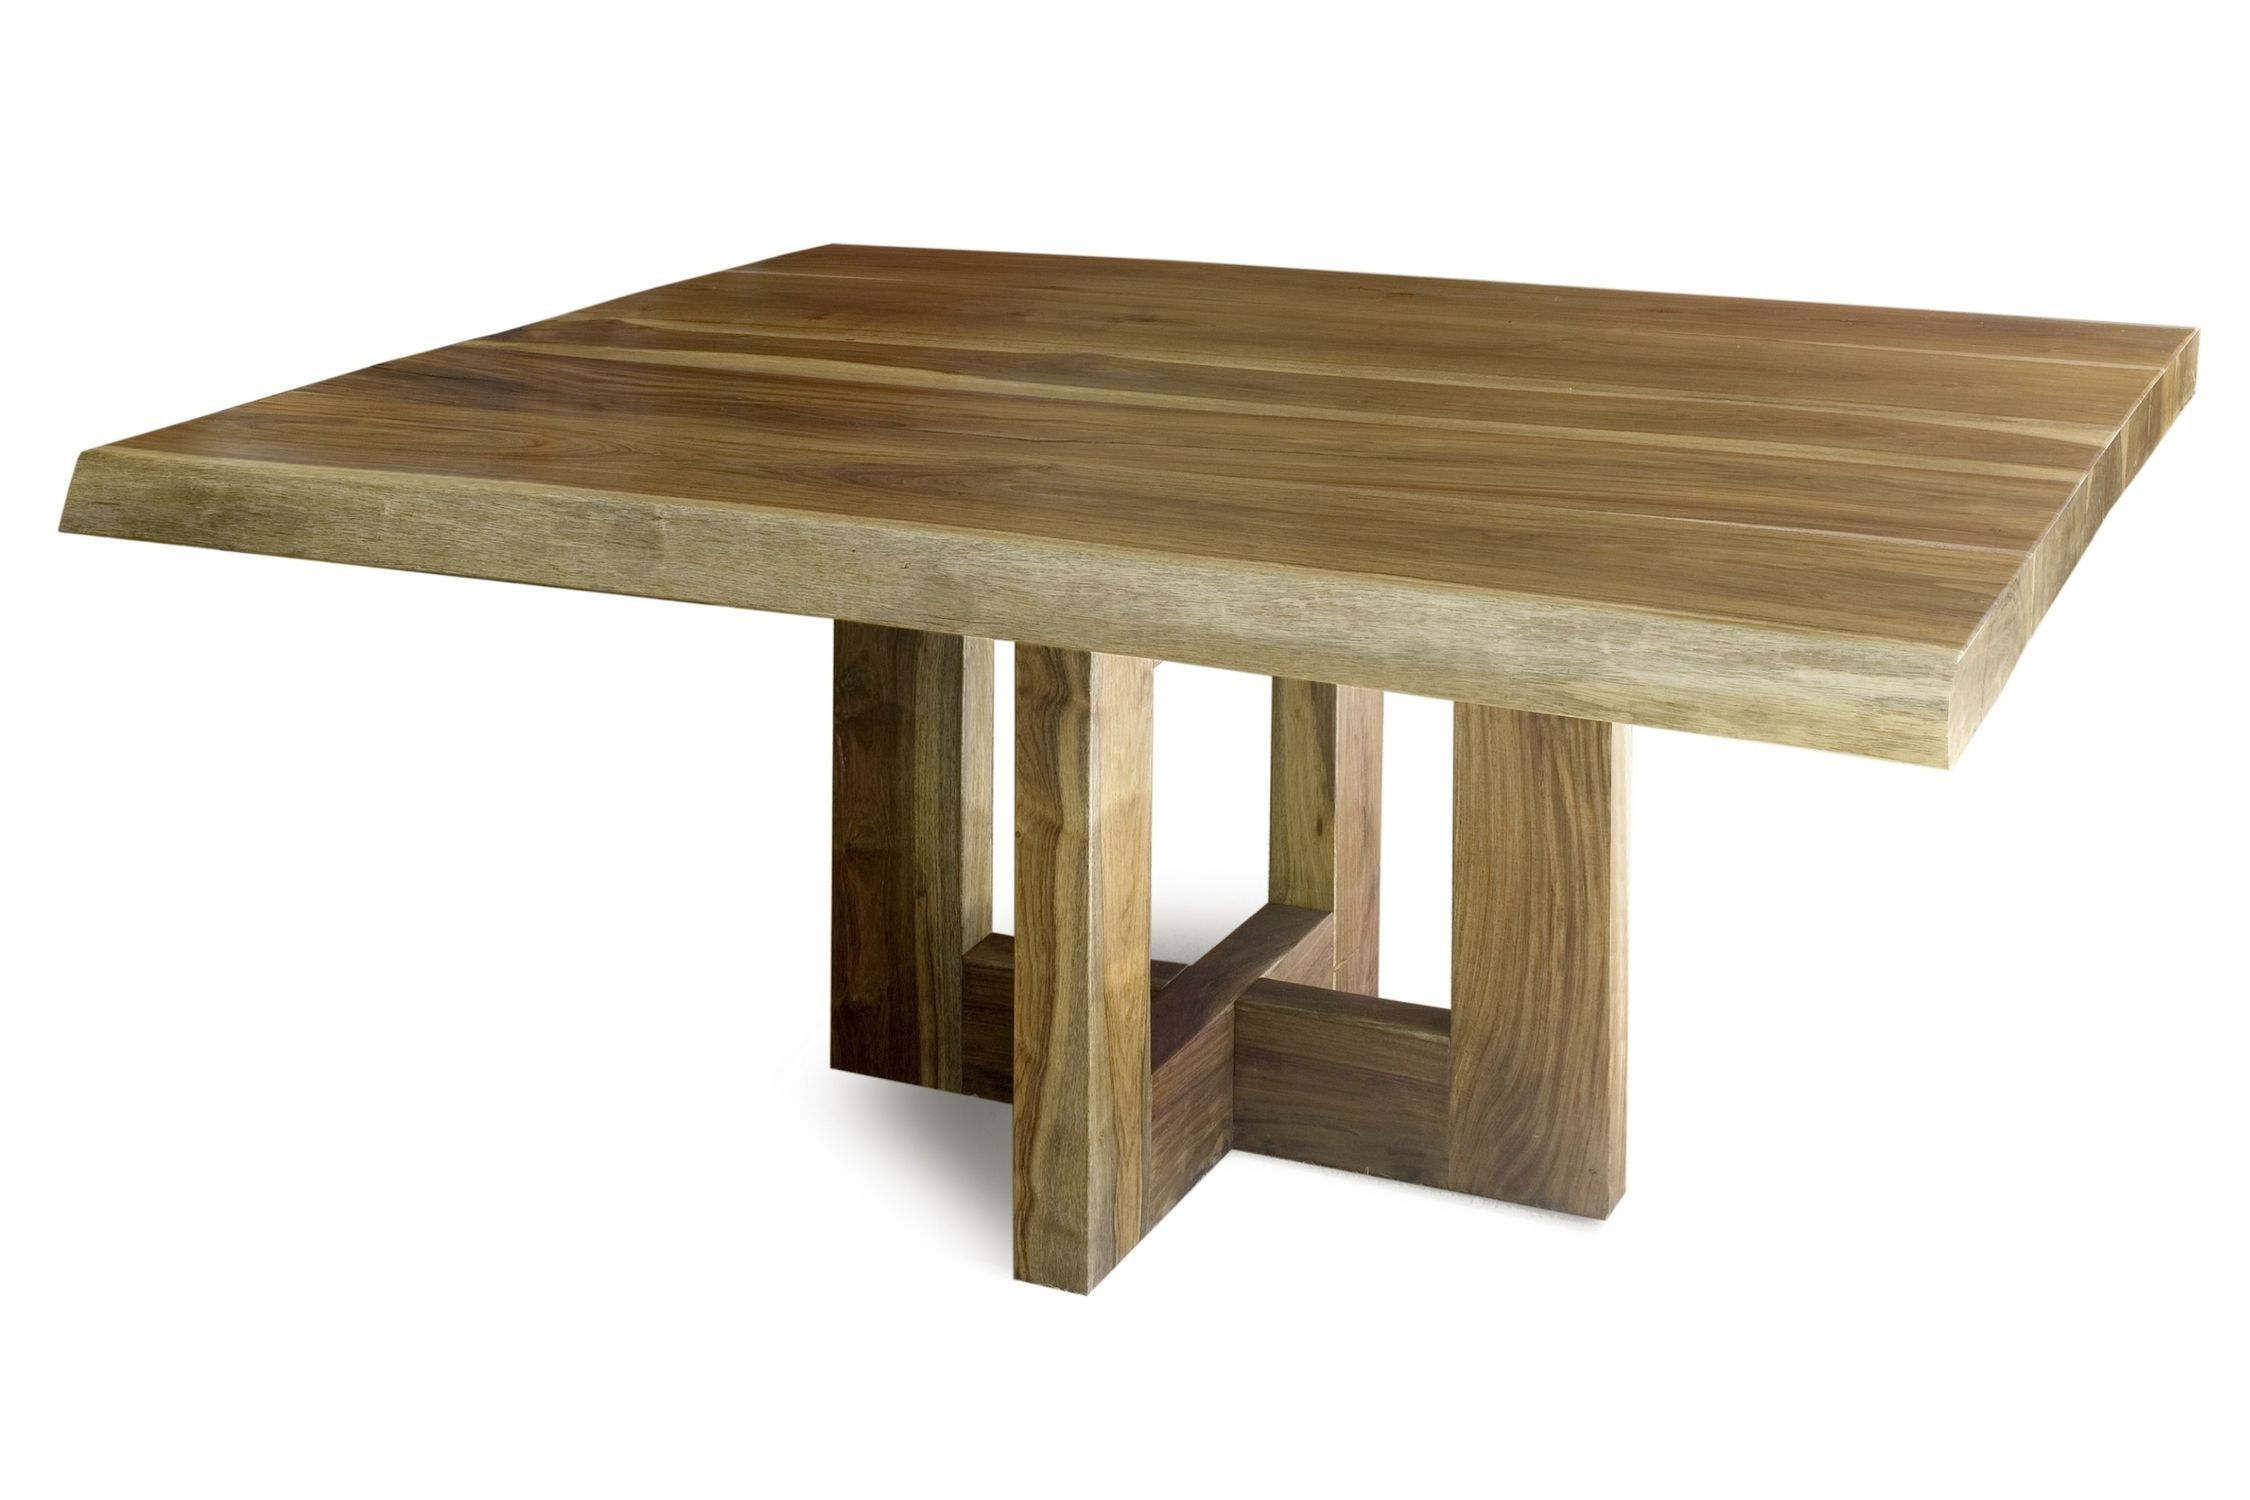 Contemporary rectangle unfinished reclaimed wood table for for Wooden table designs images